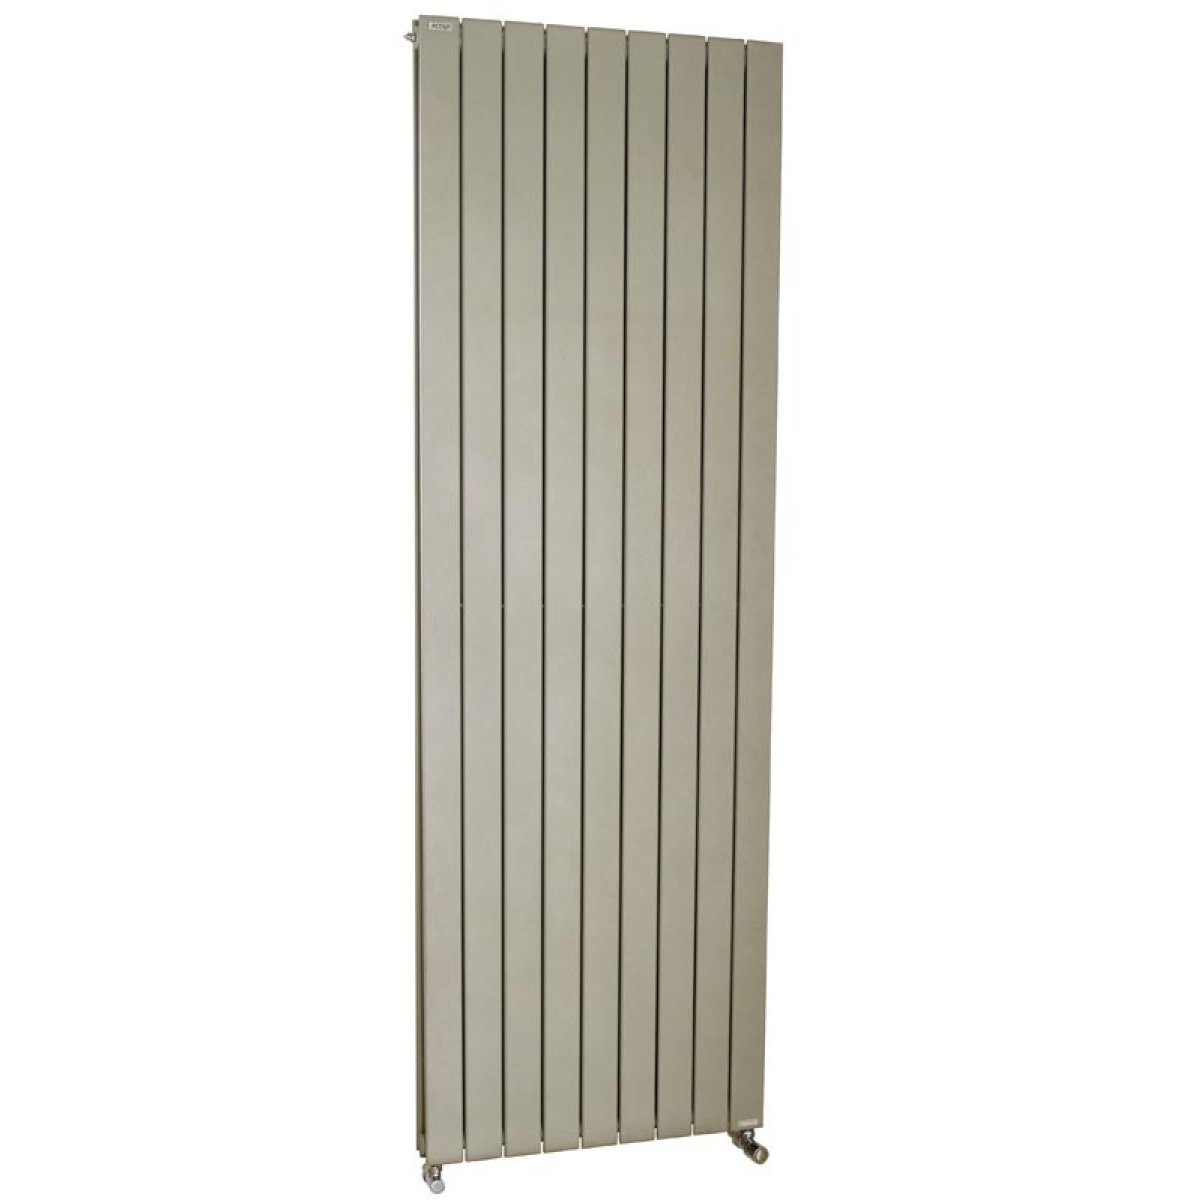 radiateur fassane vertical double eau chaude acova. Black Bedroom Furniture Sets. Home Design Ideas